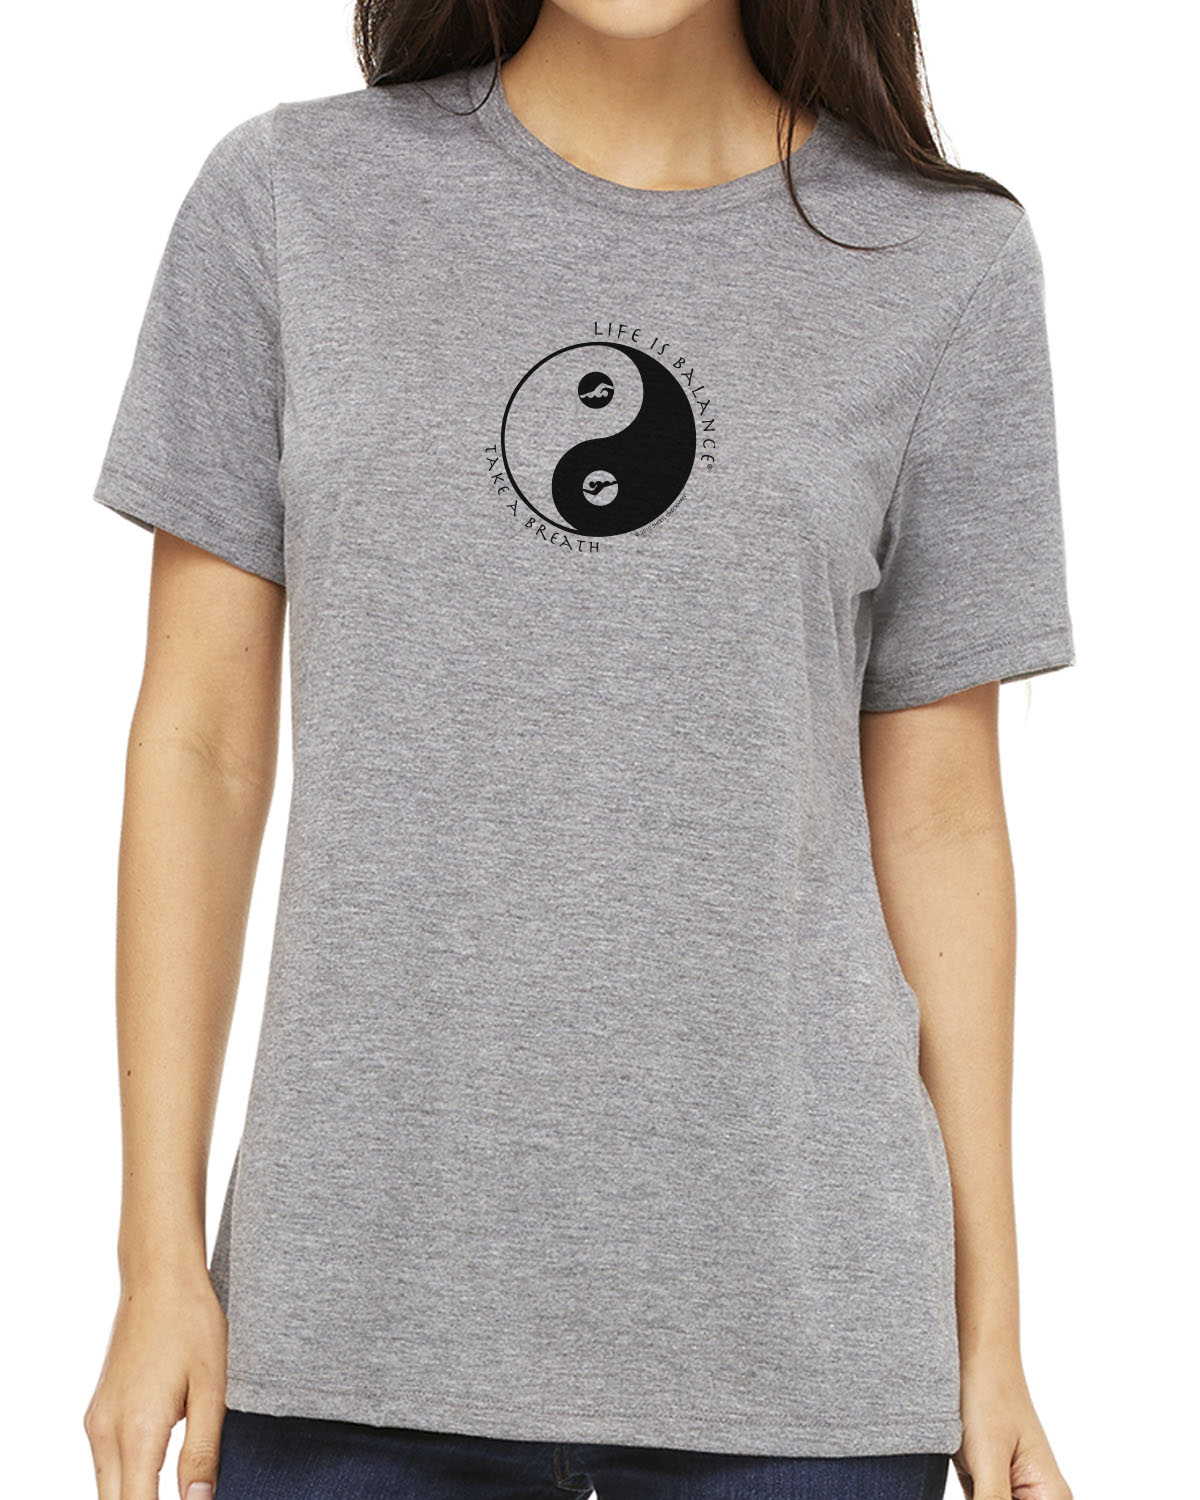 Women's short sleeve t-shirt (heather gray)